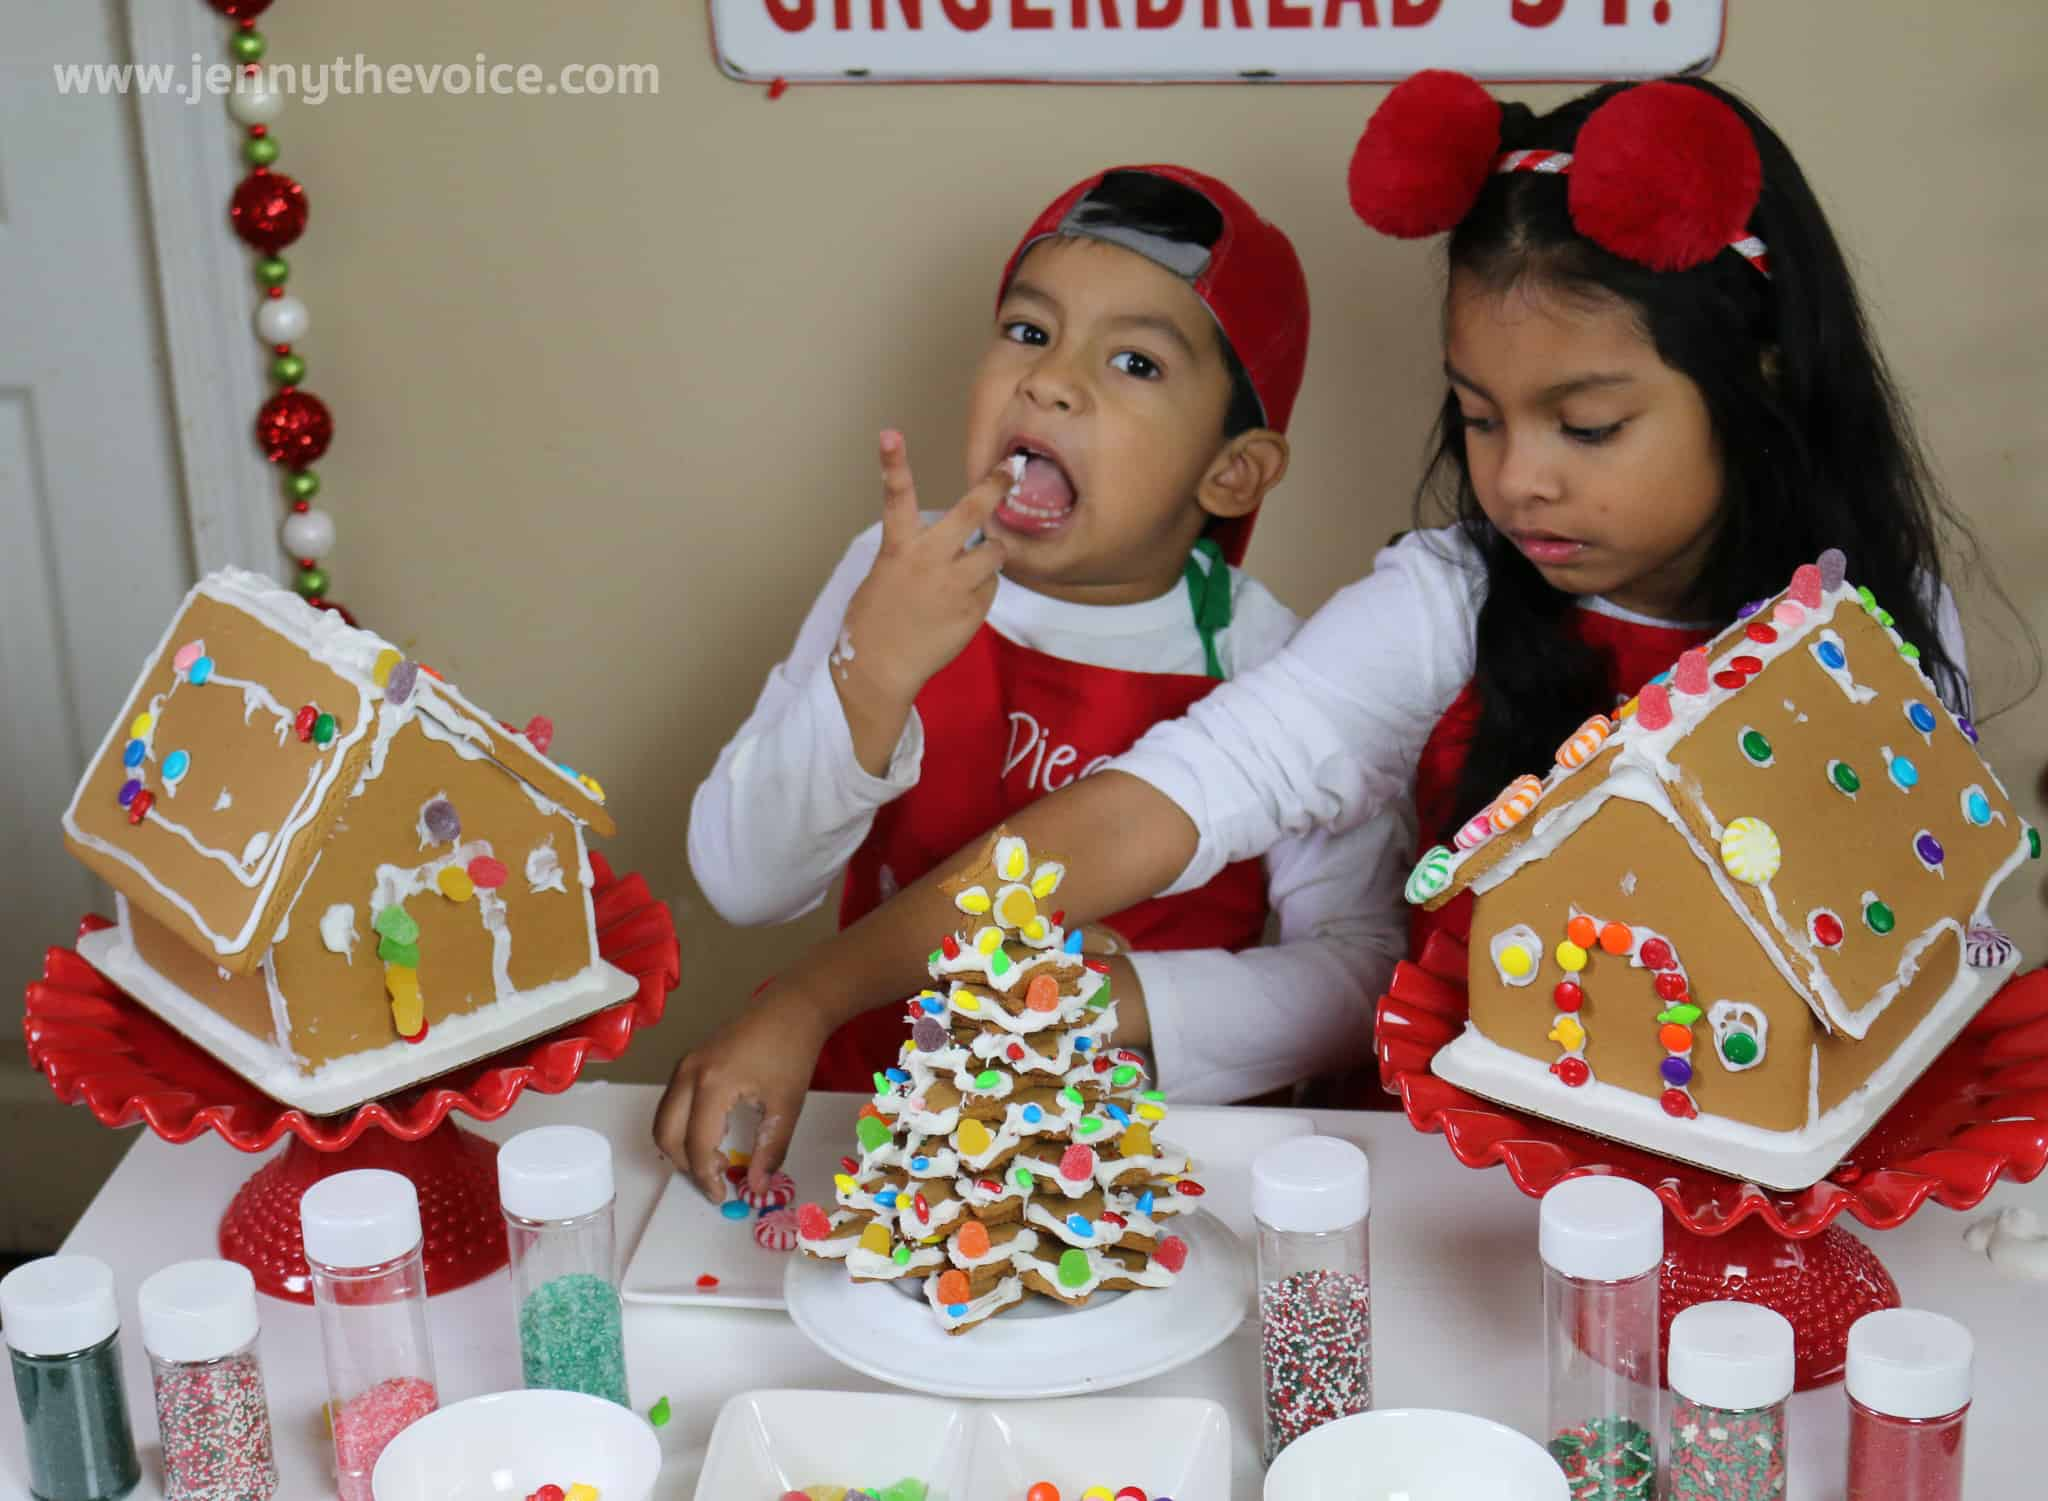 Gingerbread-House- casita-dejengibre photoshoott